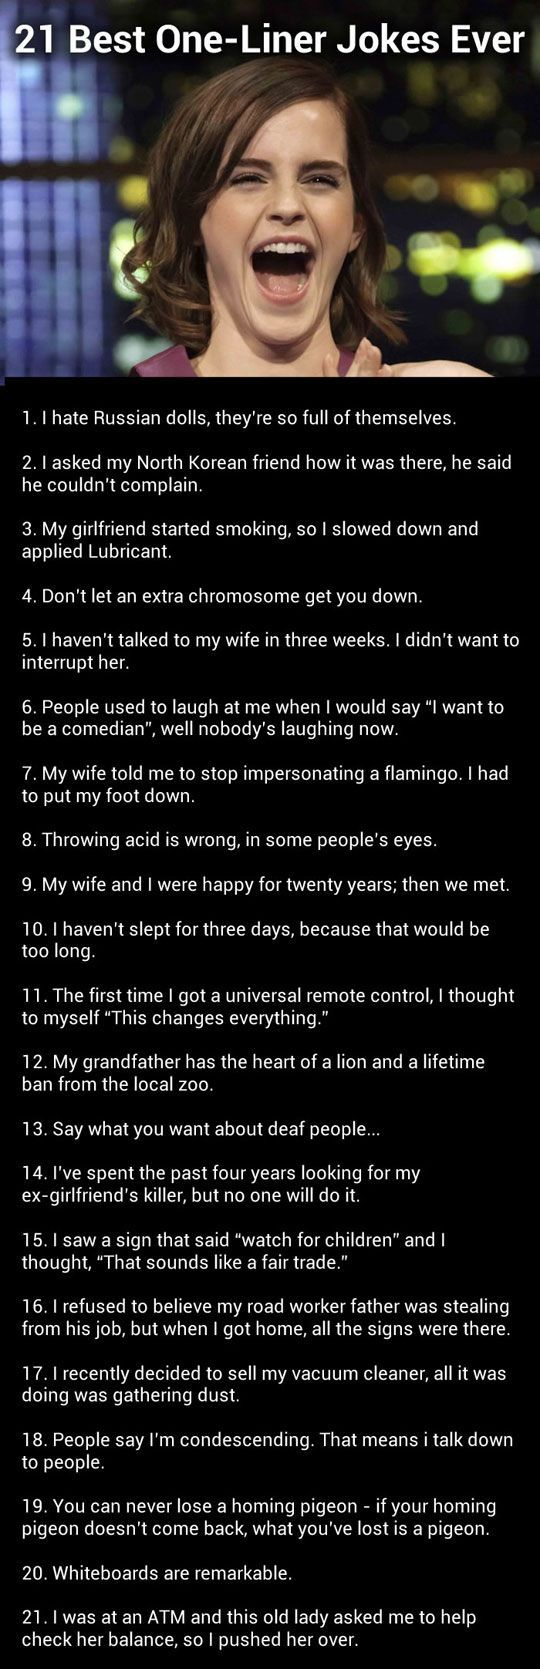 The Best OneLiner Jokes Ever St Humor And Funny Jokes - The 22 most hilarious two line jokes ever 7 killed me